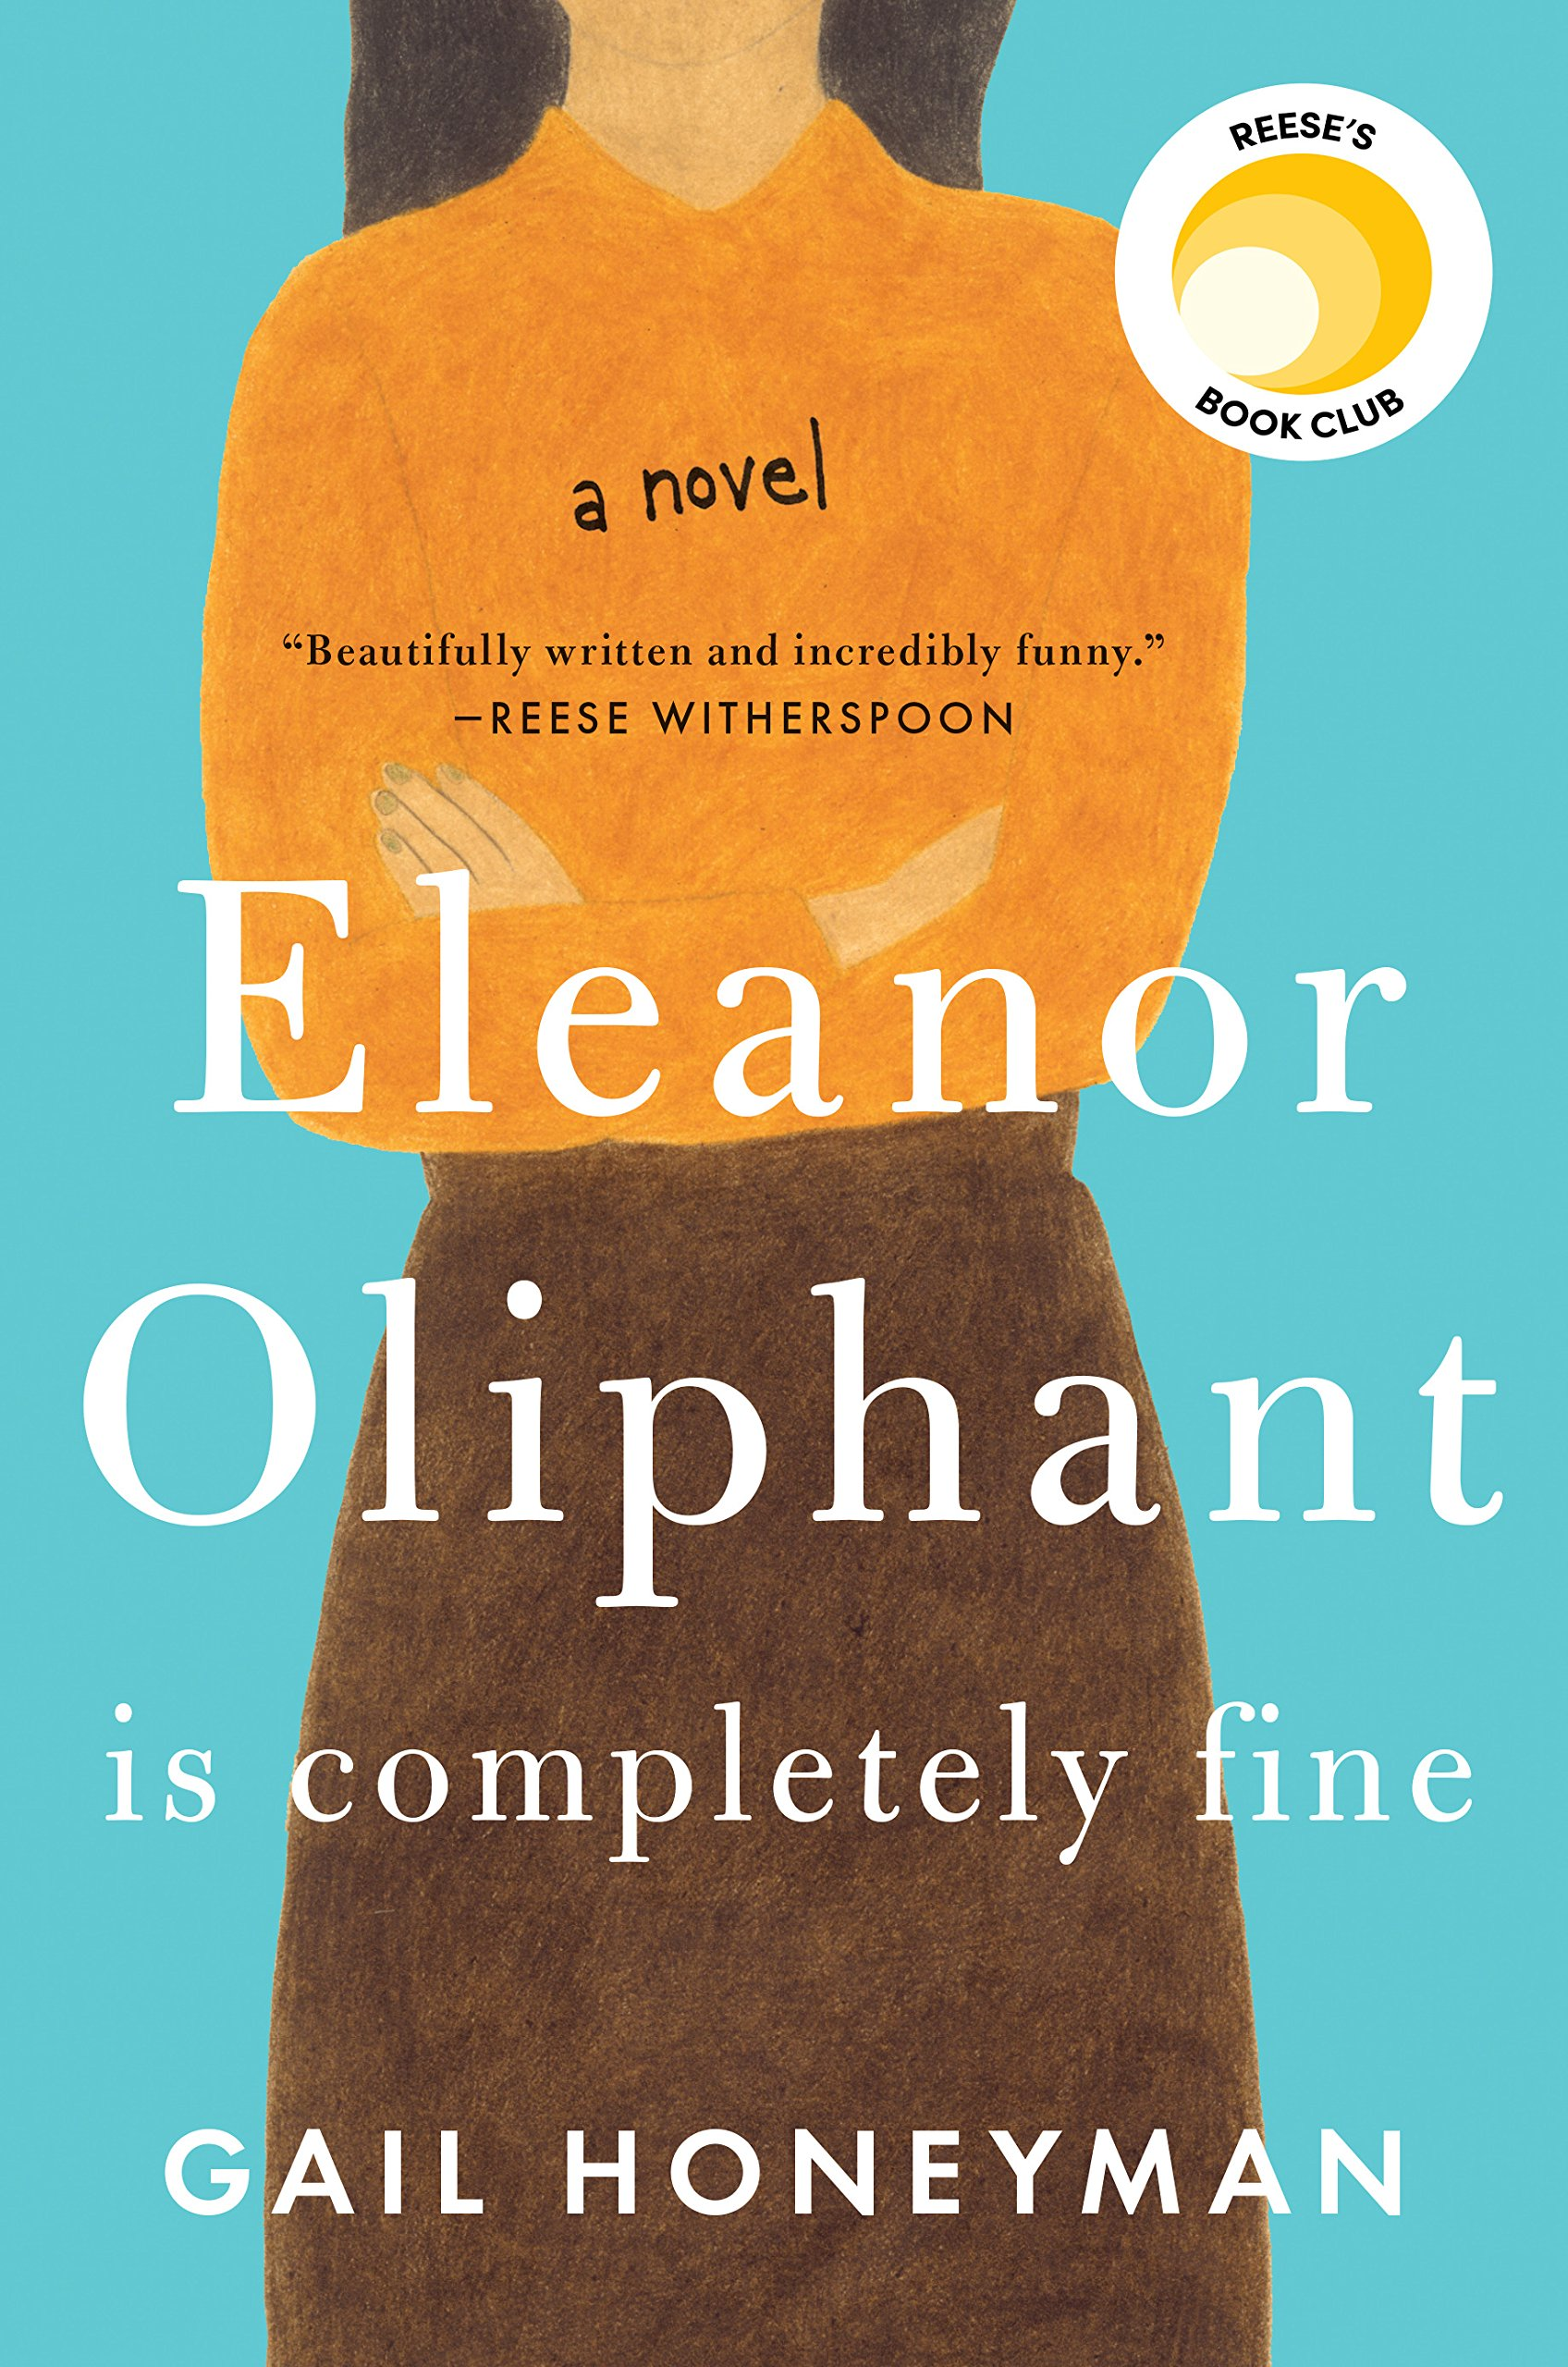 Image result for eleanor oliphant is completely fine